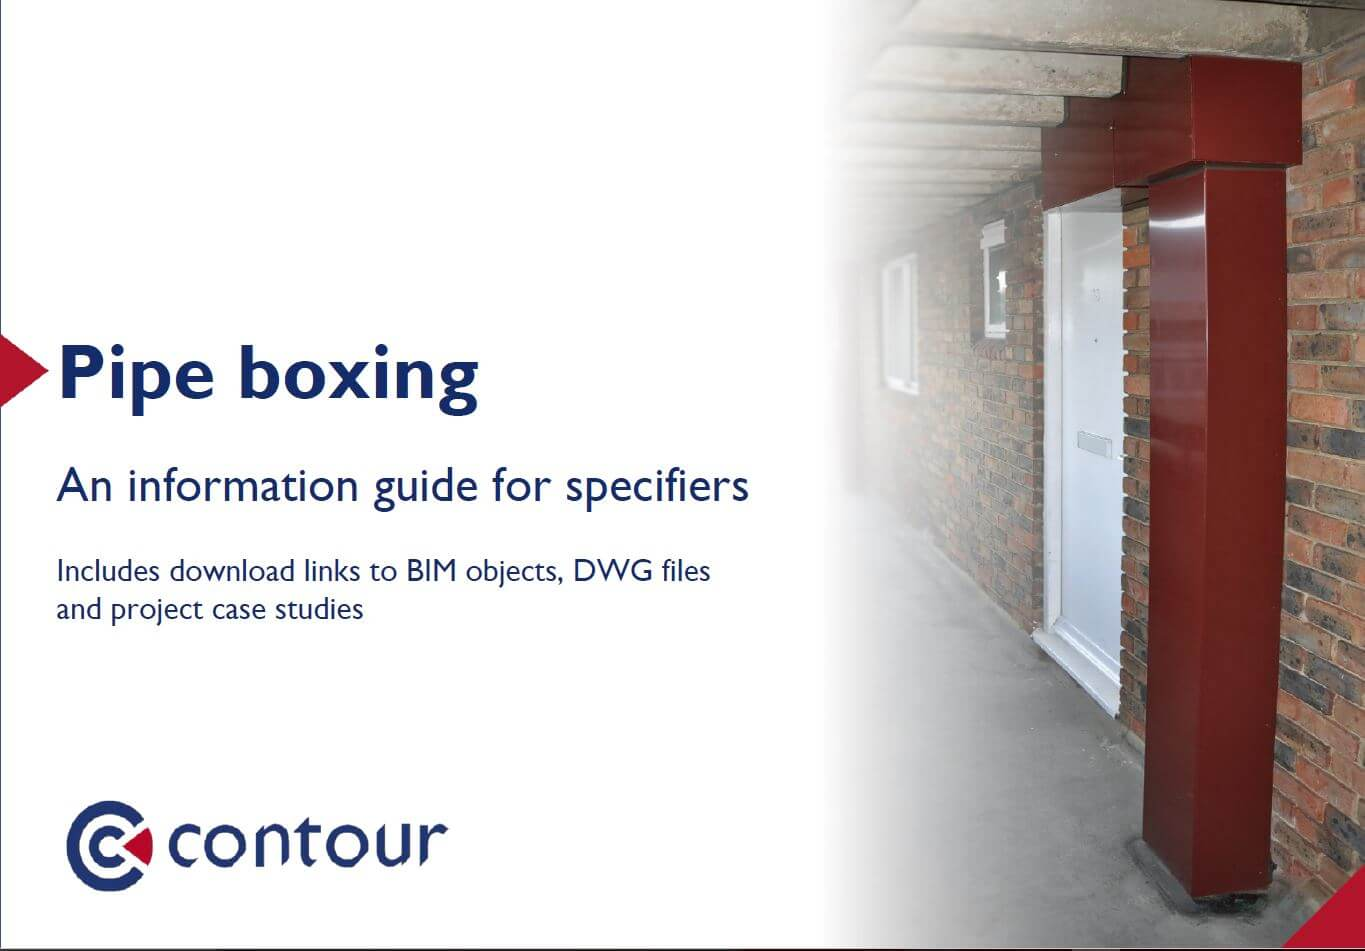 Pipe boxing – an information guide for specifiers